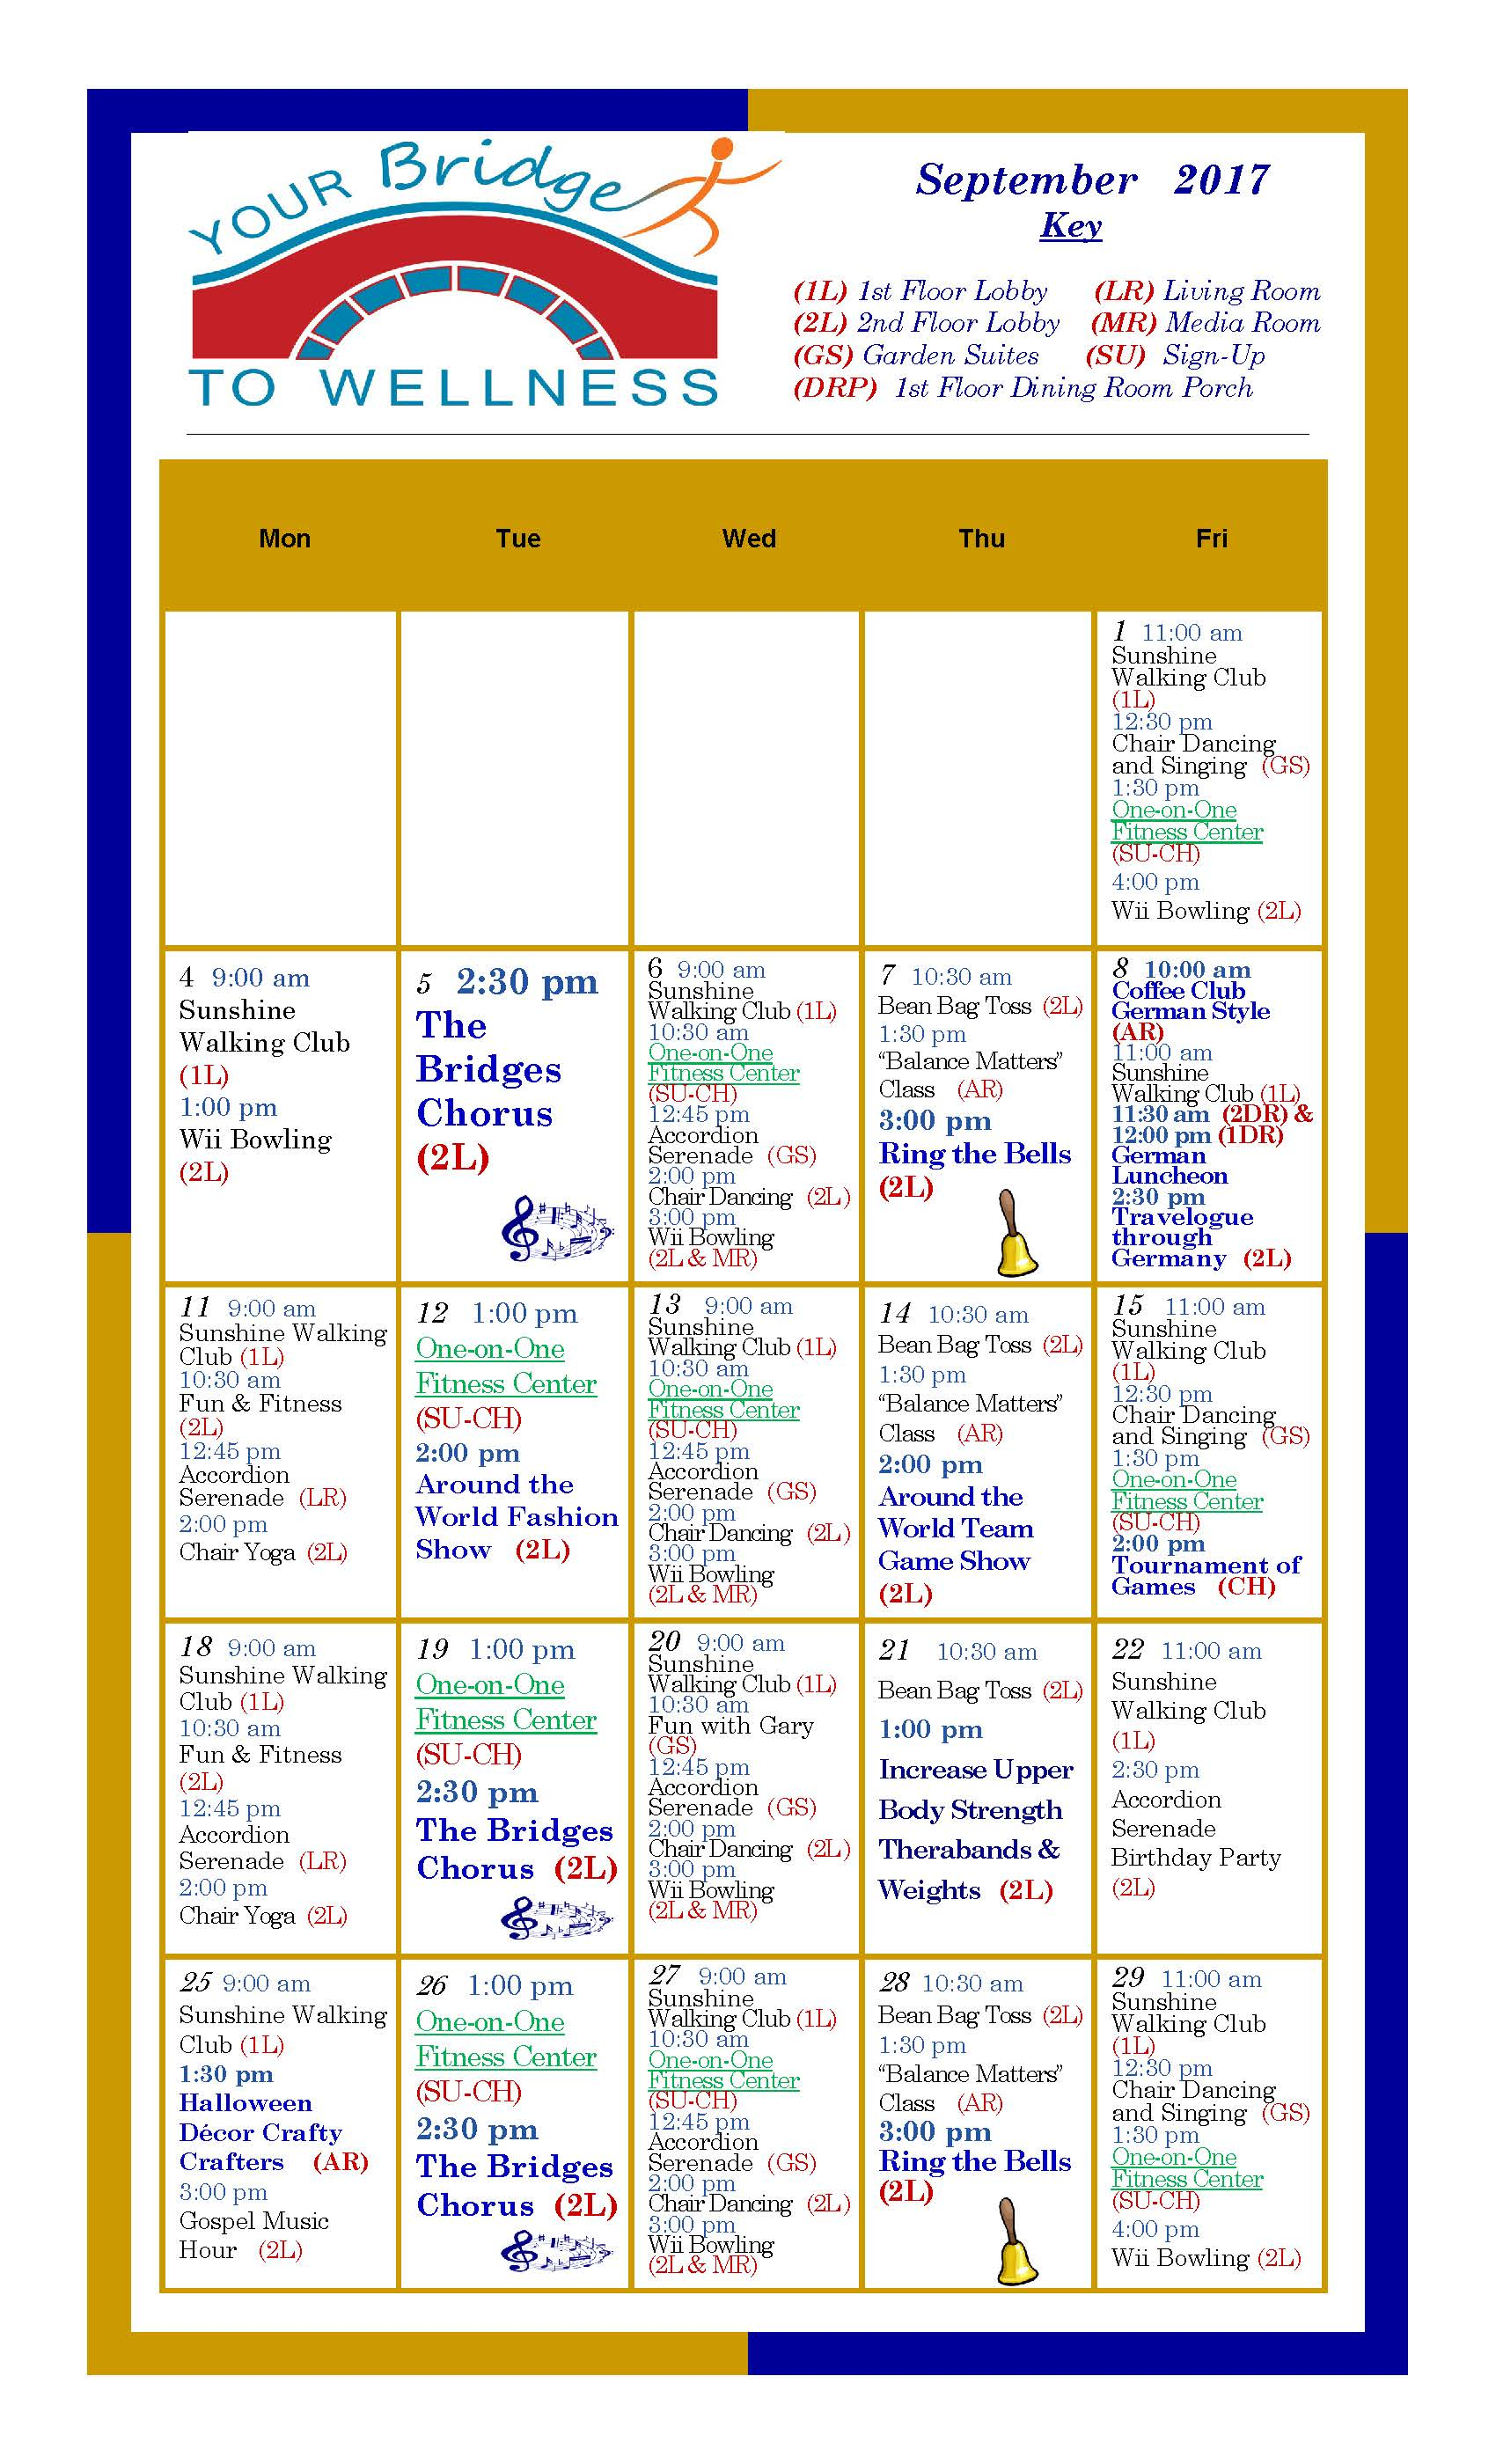 September 2017 Wellness Calendar